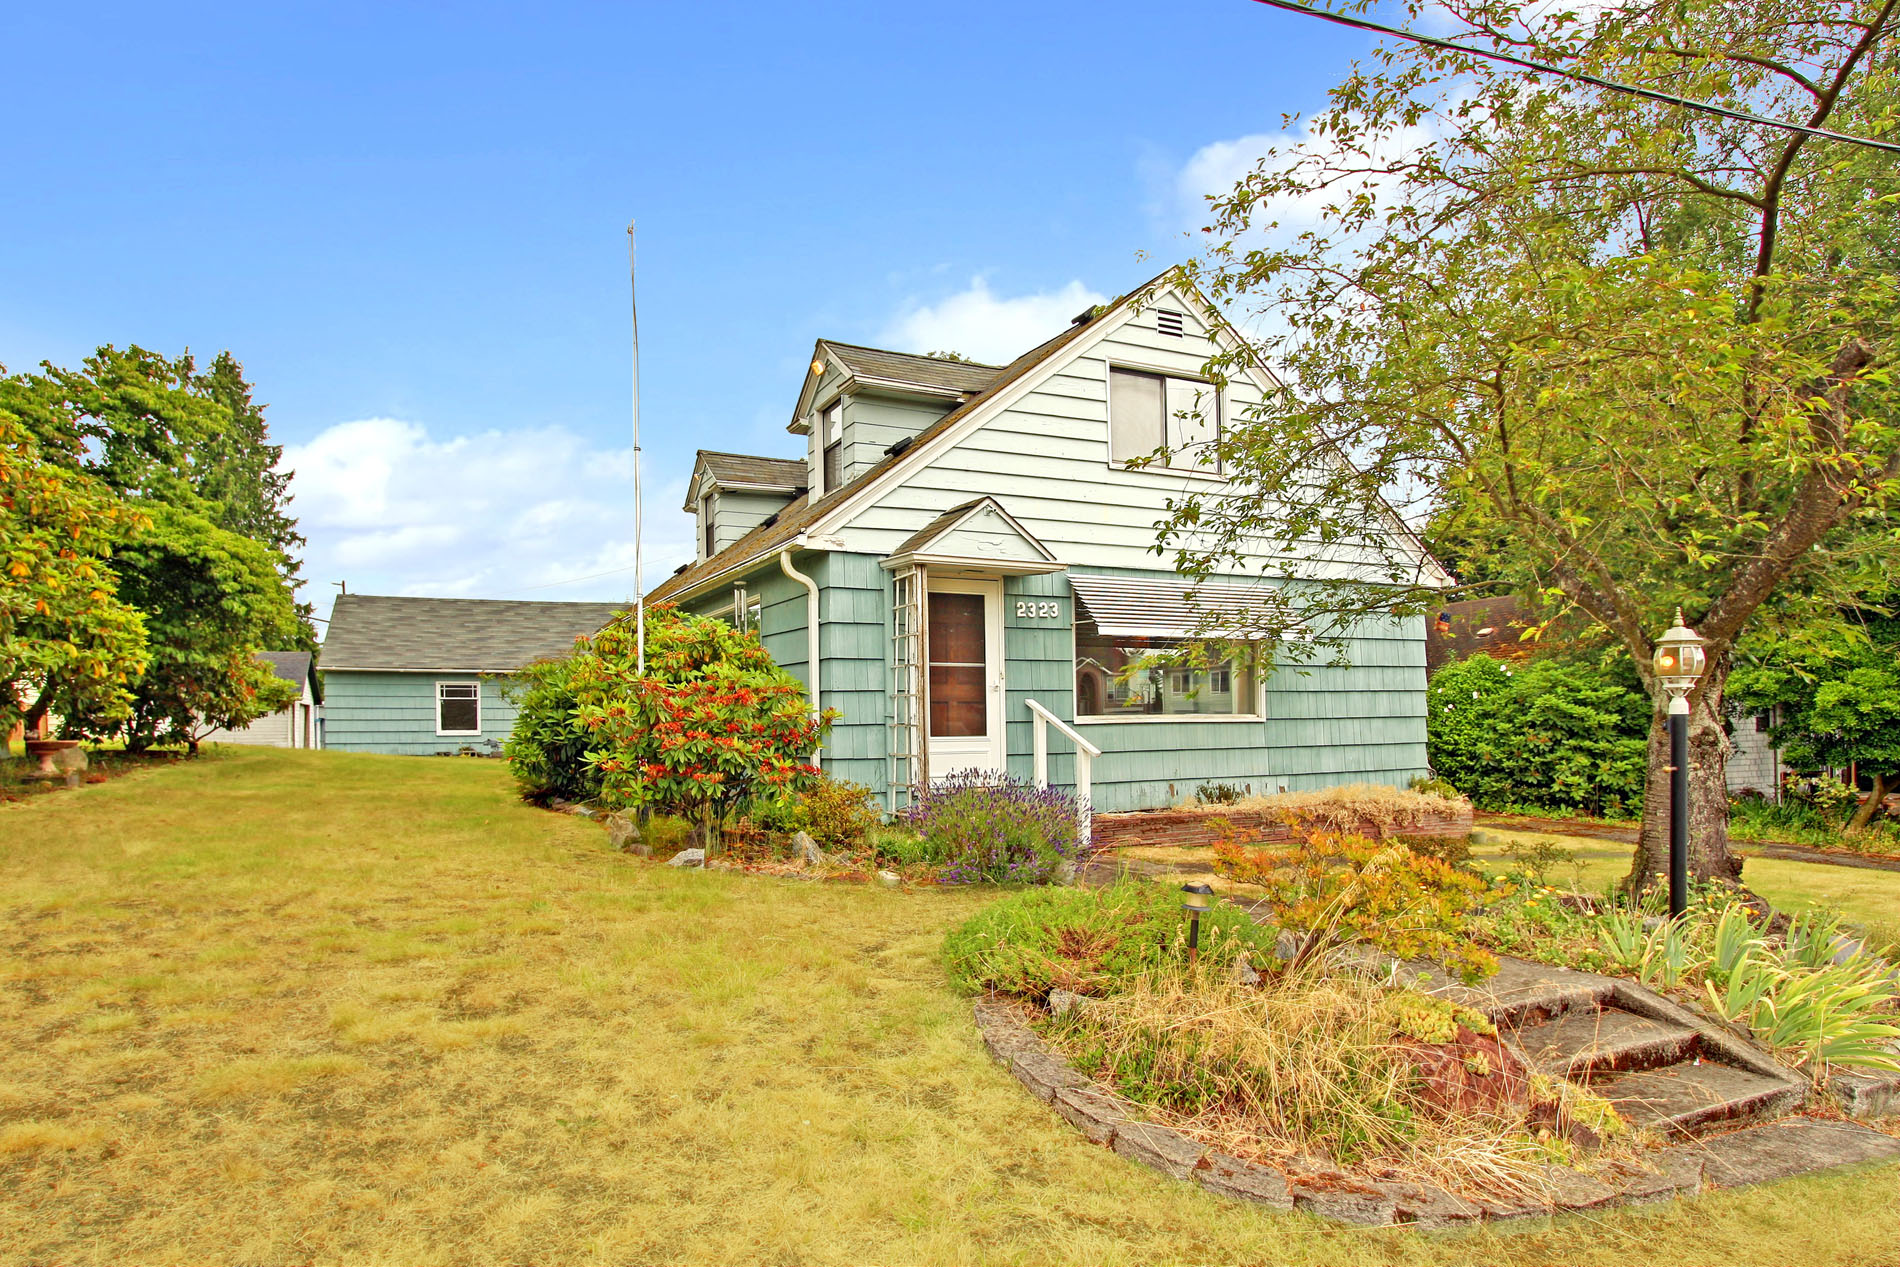 Everett-Home-for-Sale-33743_16_1